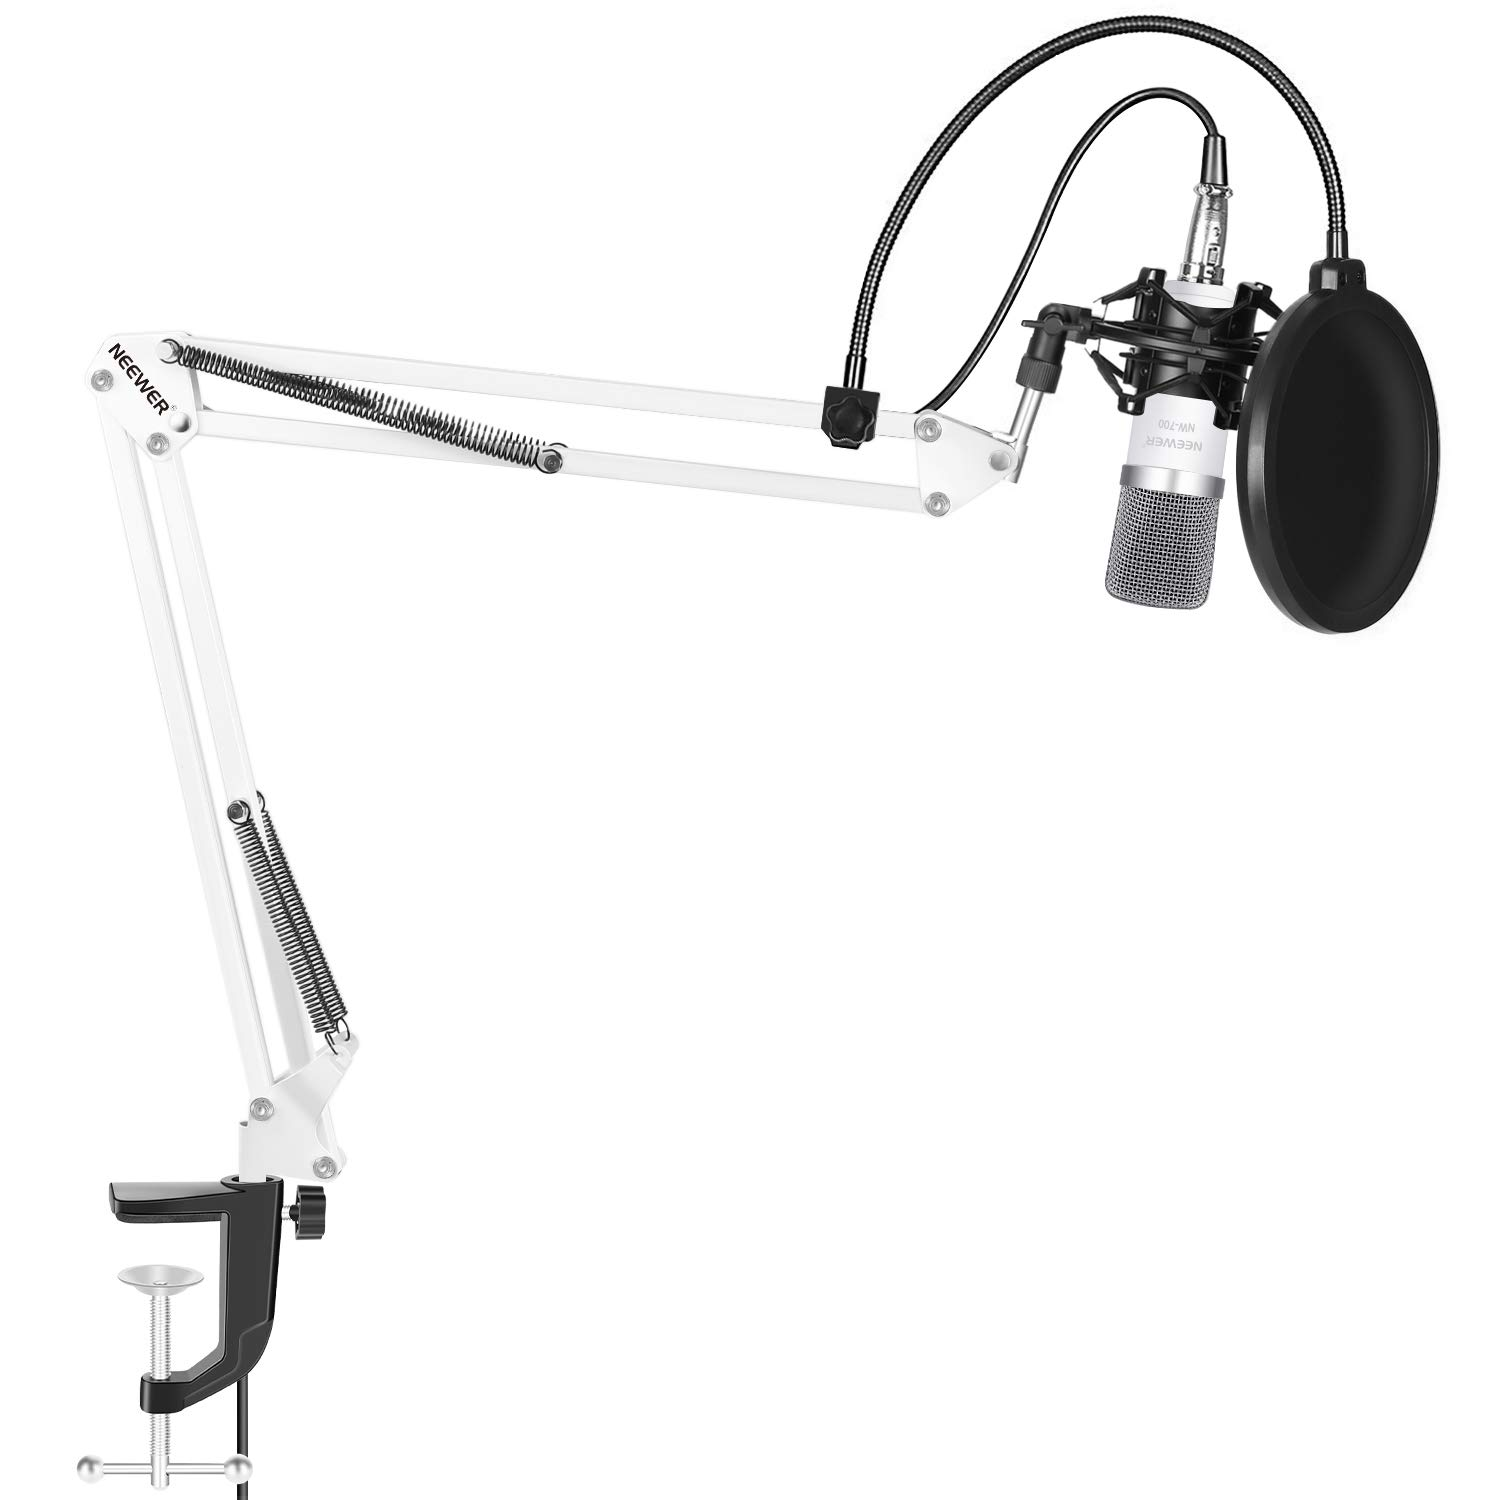 Neewer NW-700 Microphone Kit,includes:(1) Condenser Microphone + (1) Microphone Suspension Scissor Arm Stand with Mounting Clamp+(1) Pop Filter+(1) Shock Mount(White) by Neewer (Image #1)